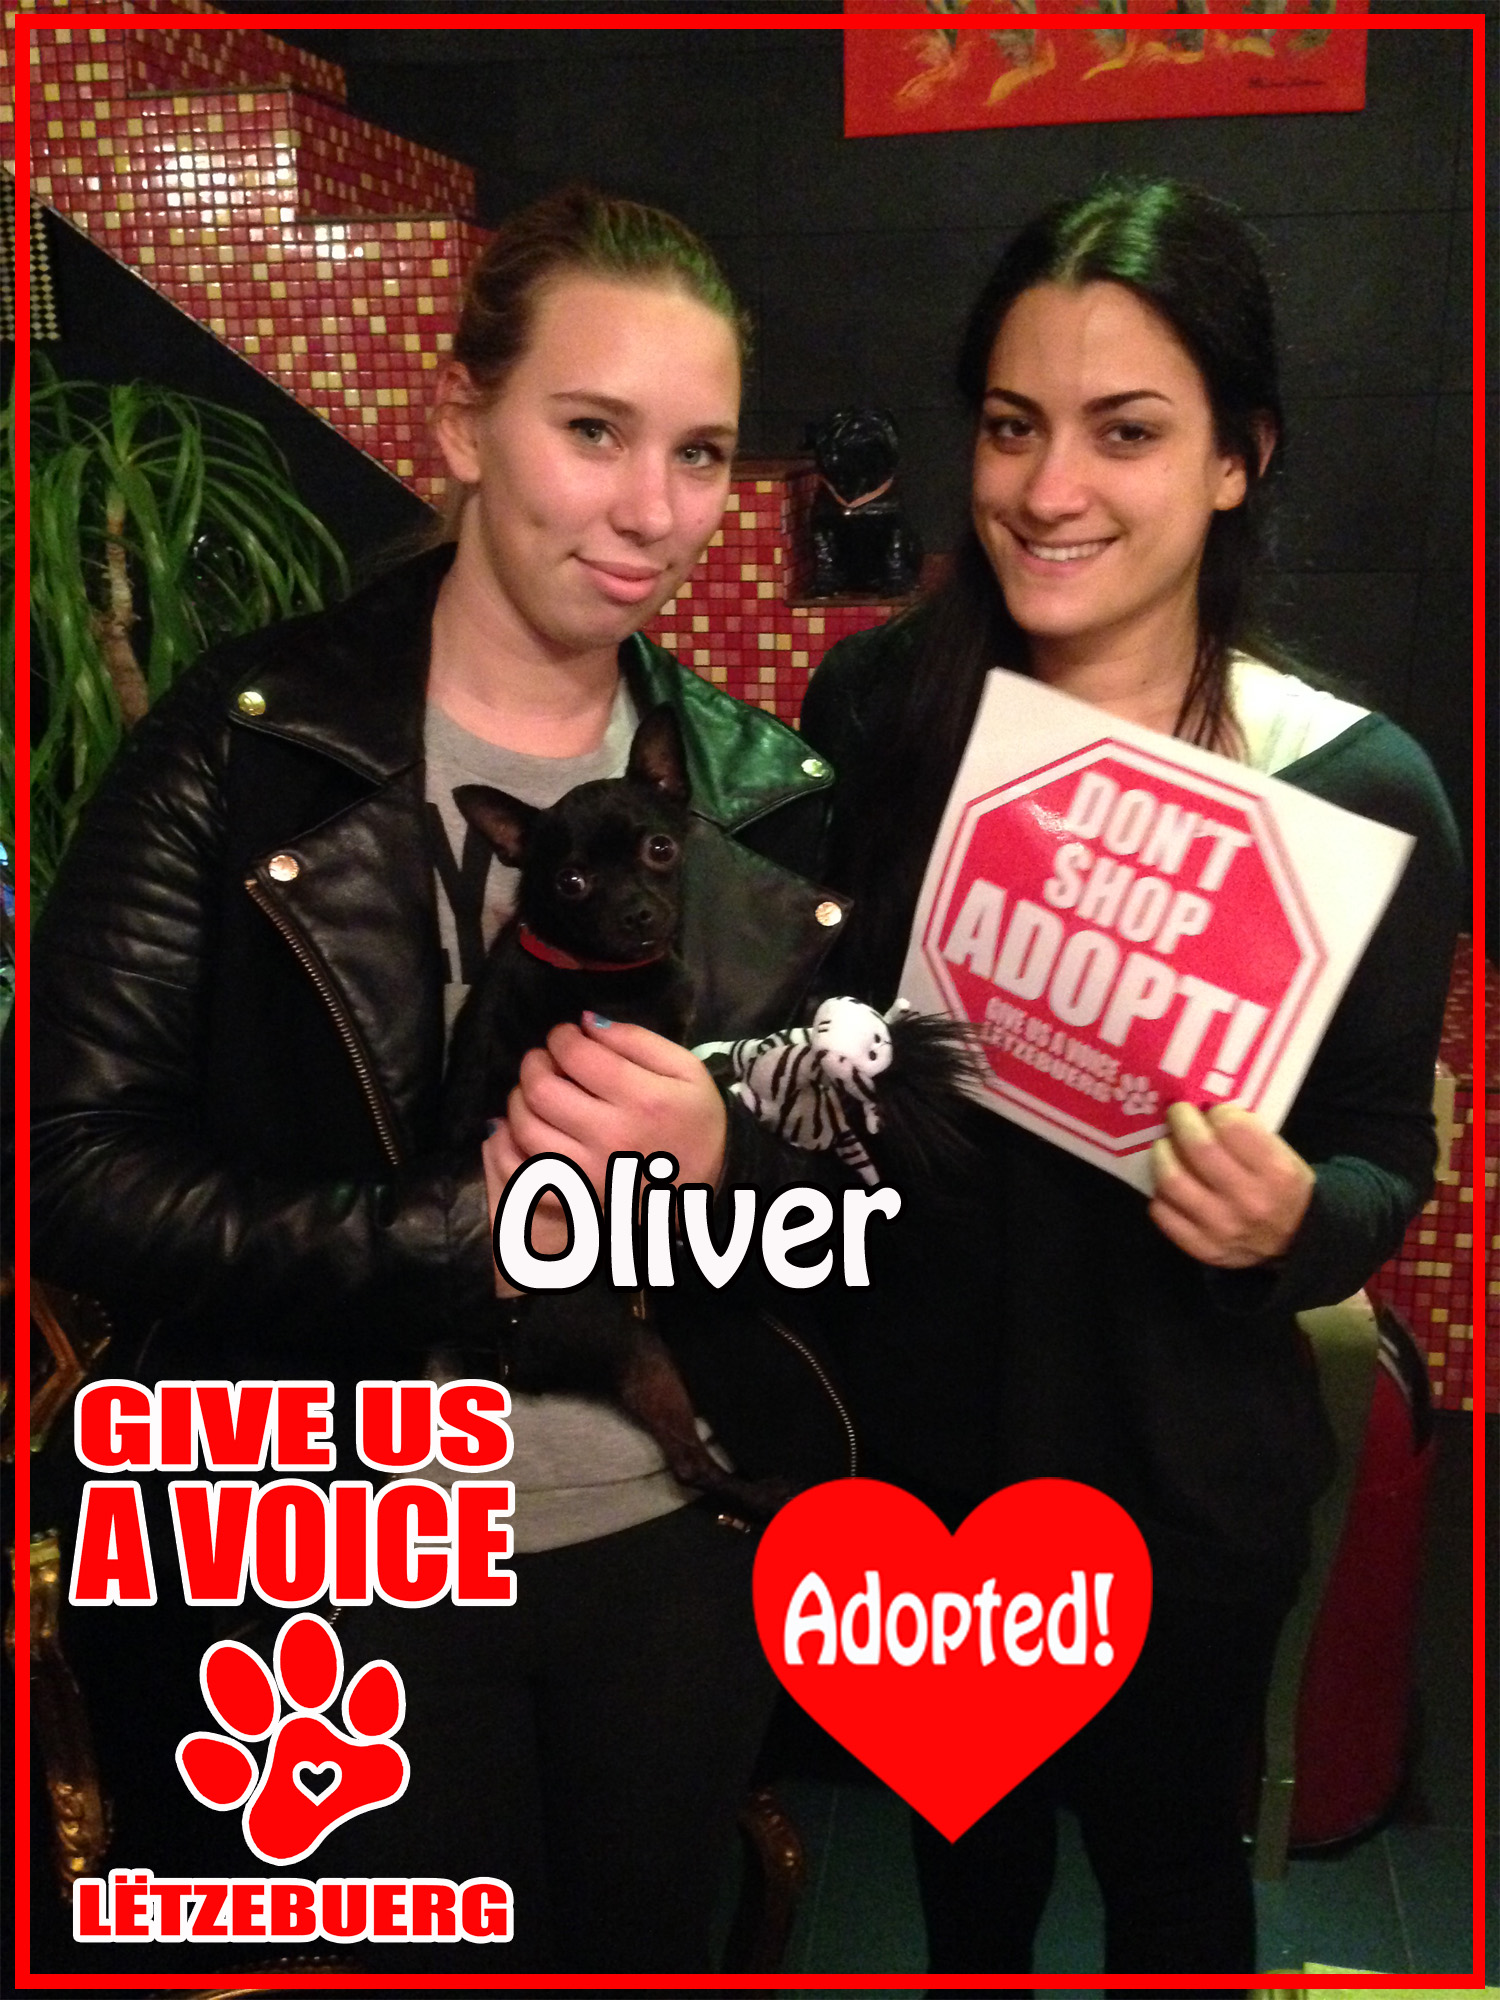 Oliver Adopted! copy